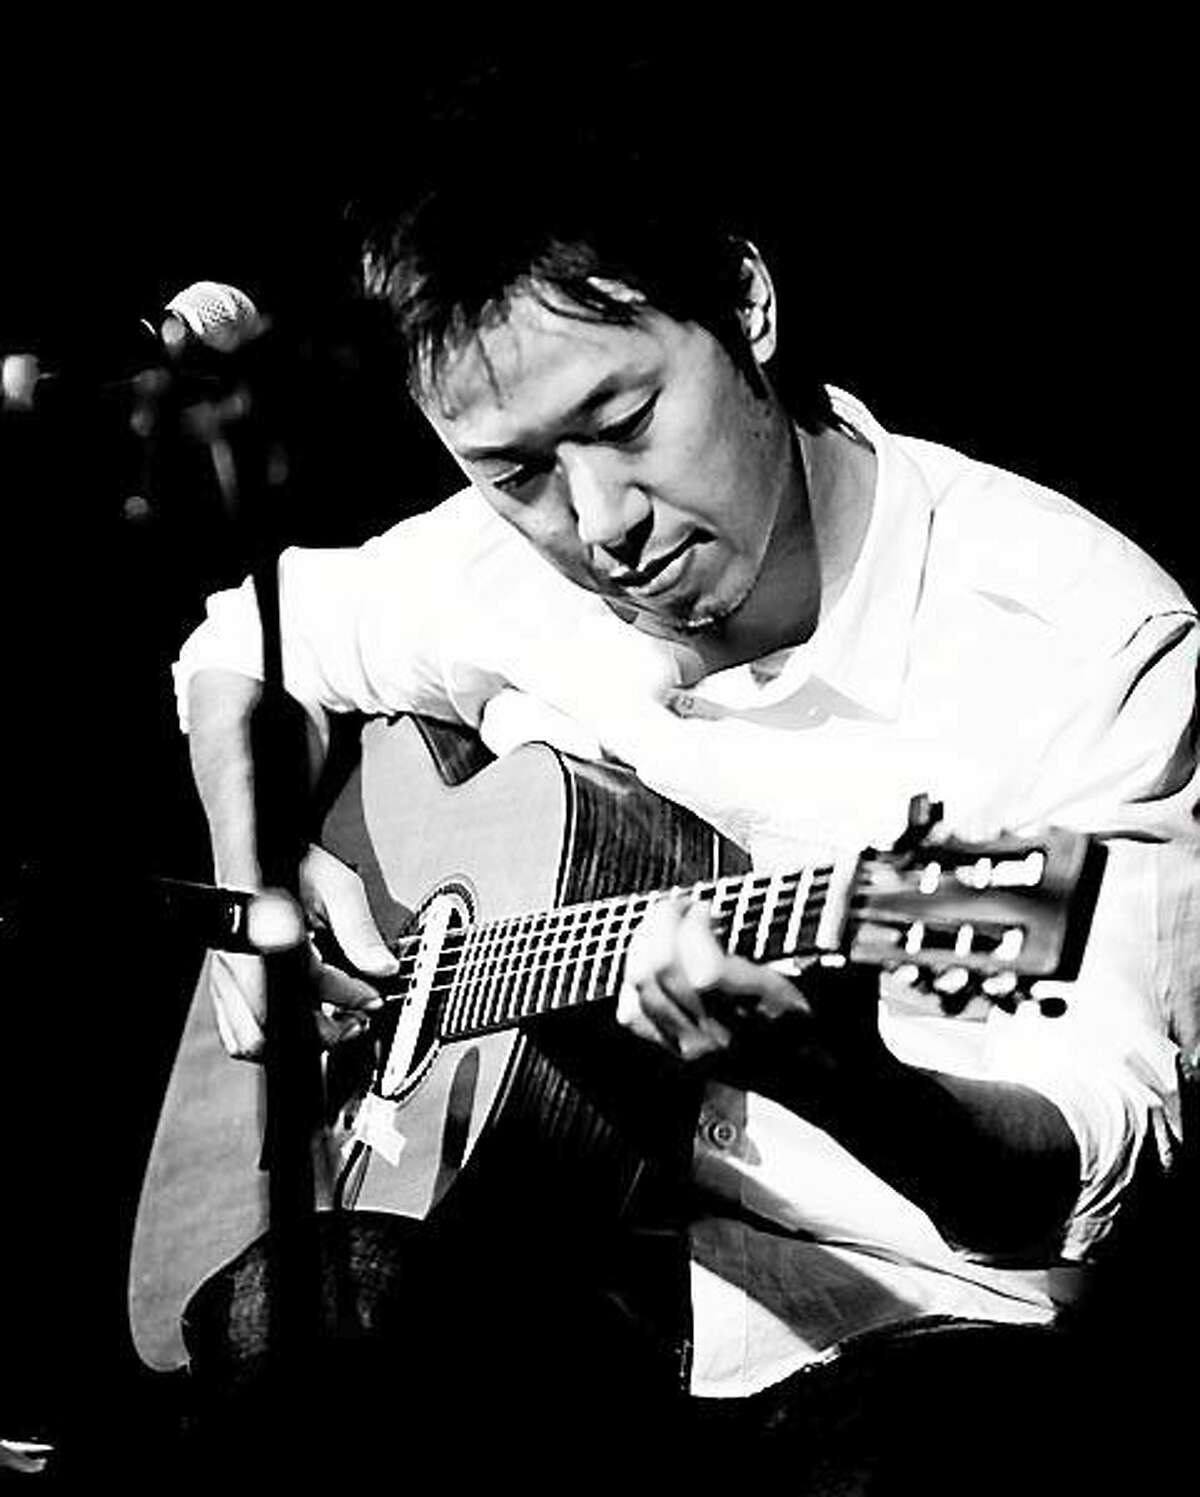 """Contributed photos HYPERLINK """"http://nilssonstudio.com""""Leif Nilsson Spring Street Studio and Gallery presents its next Concert in the Garden Sunday, March 8, 4-6 p.m., with guitarist Hiroya Tsukamoto and opening music by Erik Simon Vuoritie."""